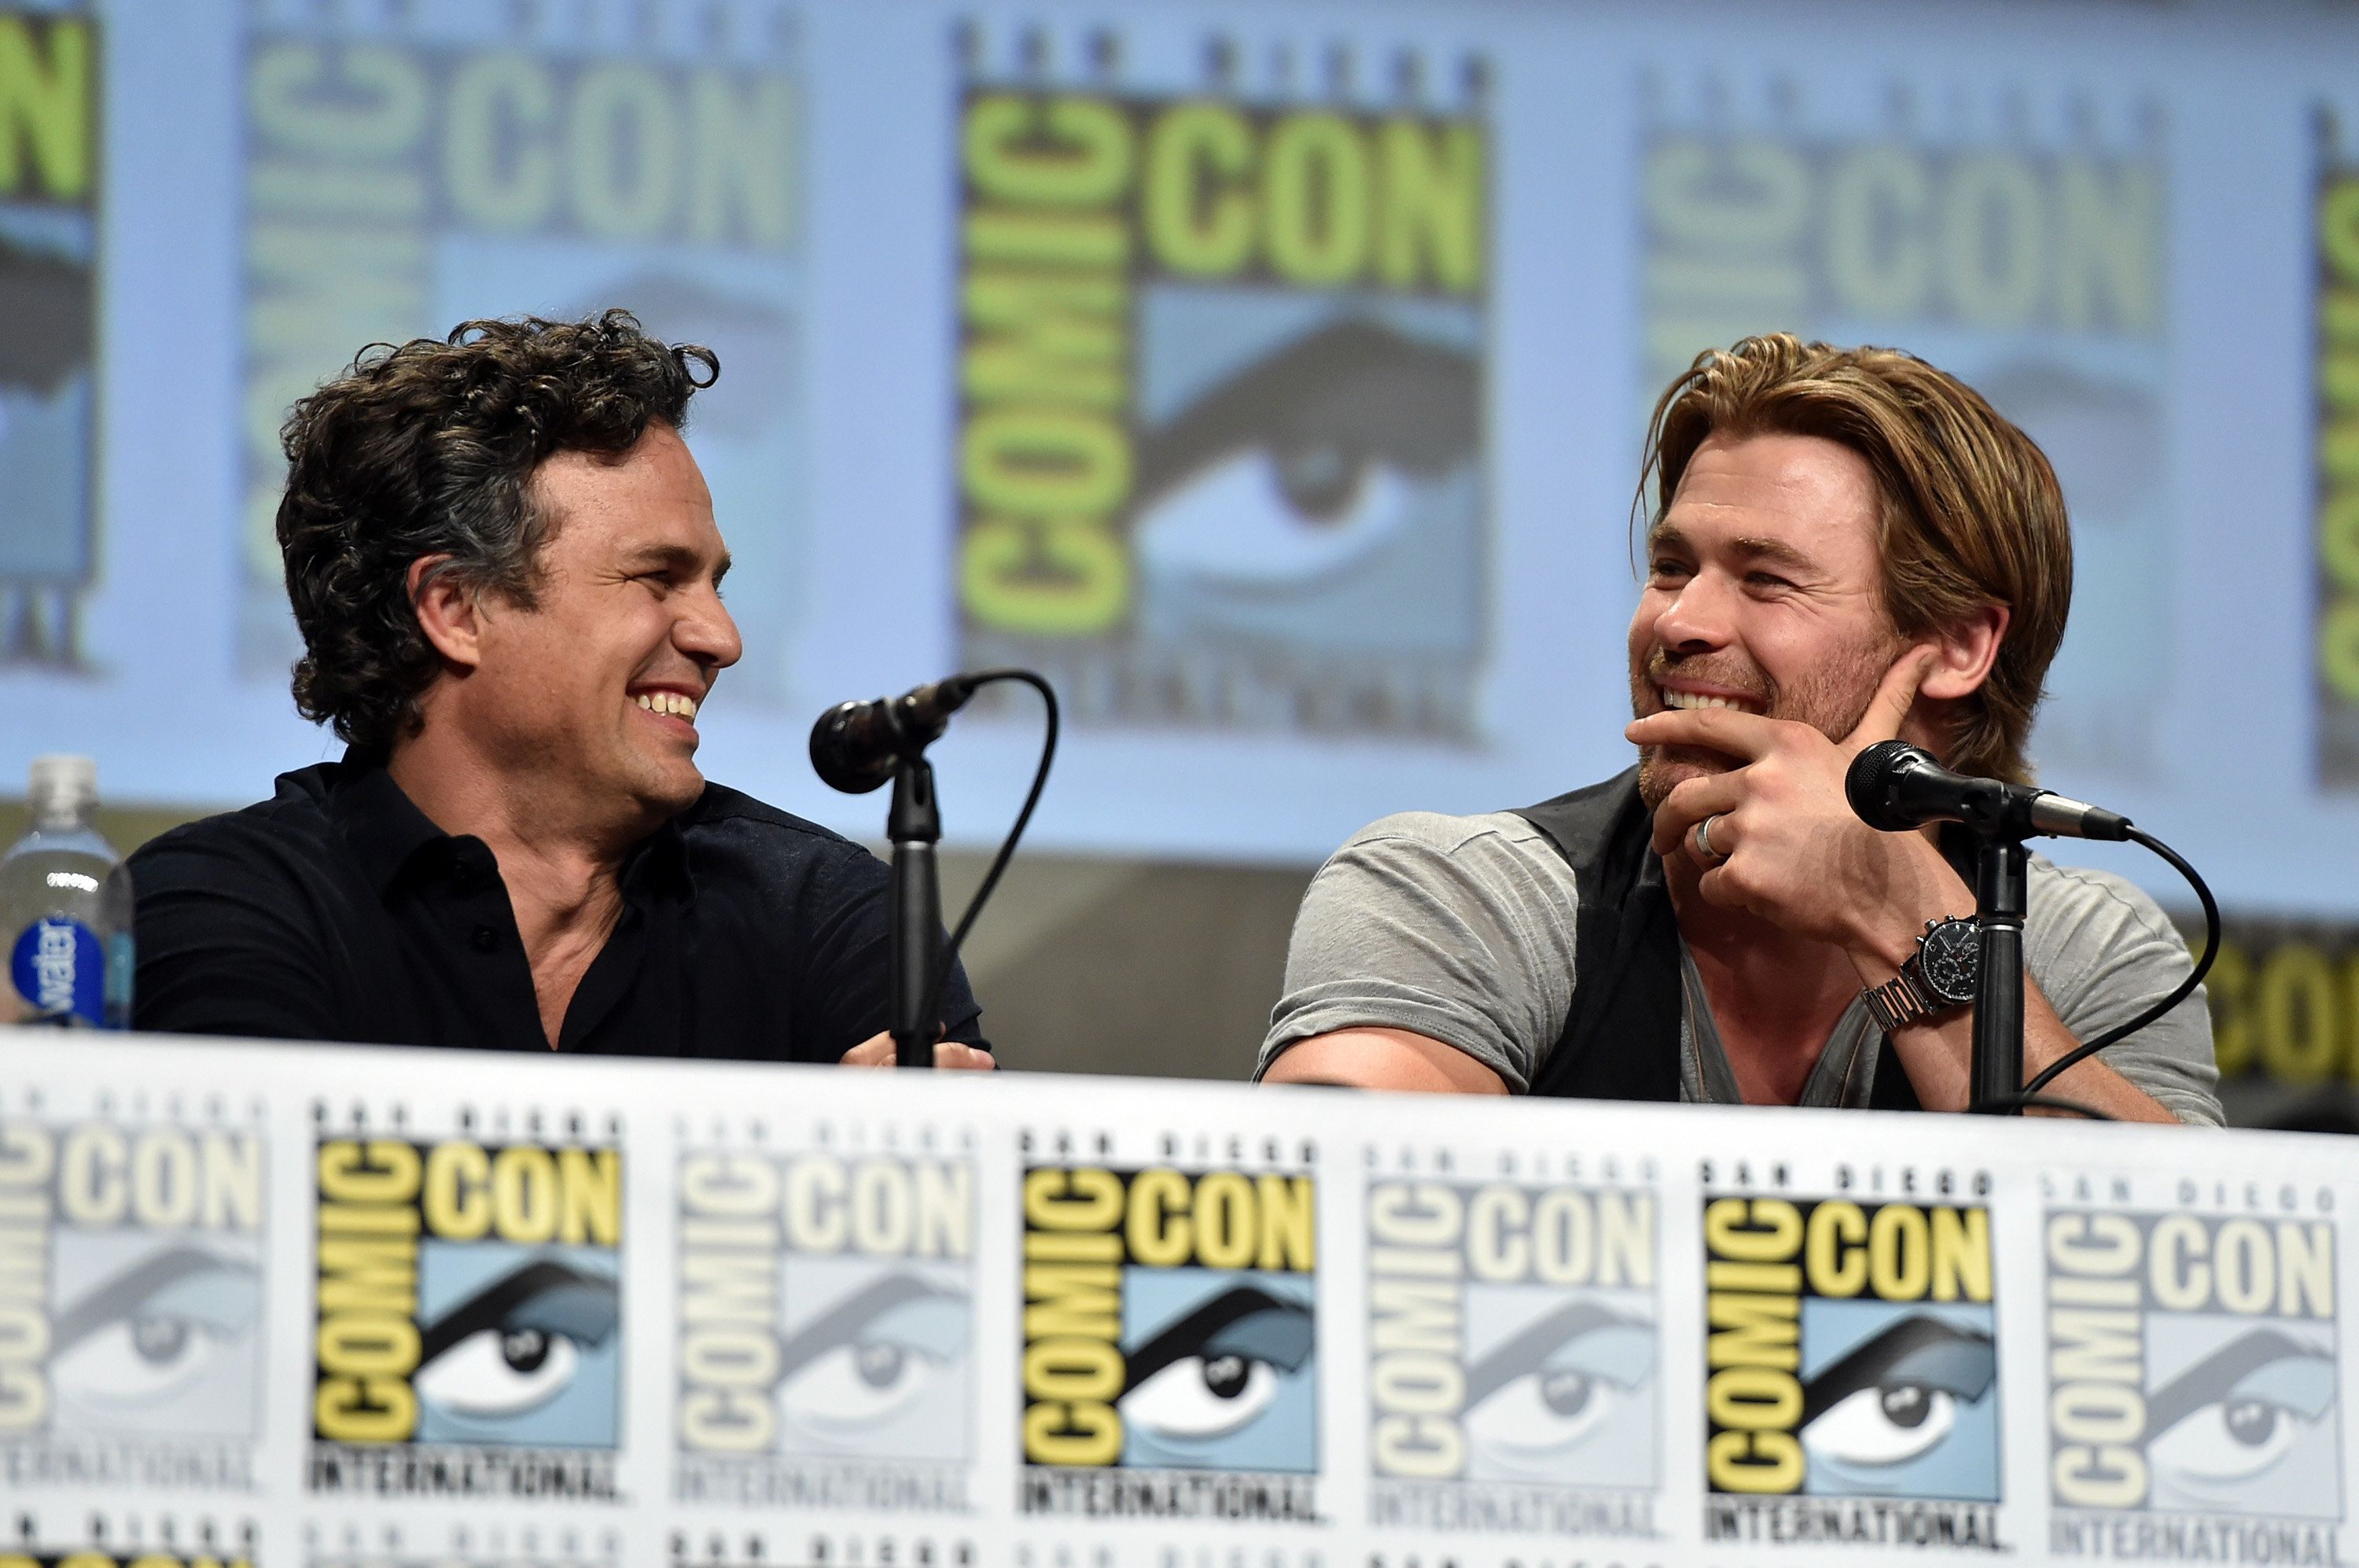 SAN DIEGO, CA - JULY 26:  Actors Mark Ruffalo and Chris Hemsworth onstage at Marvel's Hall H Panel for 'Avengers: Age Of Ultron' during Comic-Con International 2014 at San Diego Convention Center at  on July 26, 2014 in San Diego, California.  (Photo by Alberto E. Rodriguez/Getty Images for Disney)